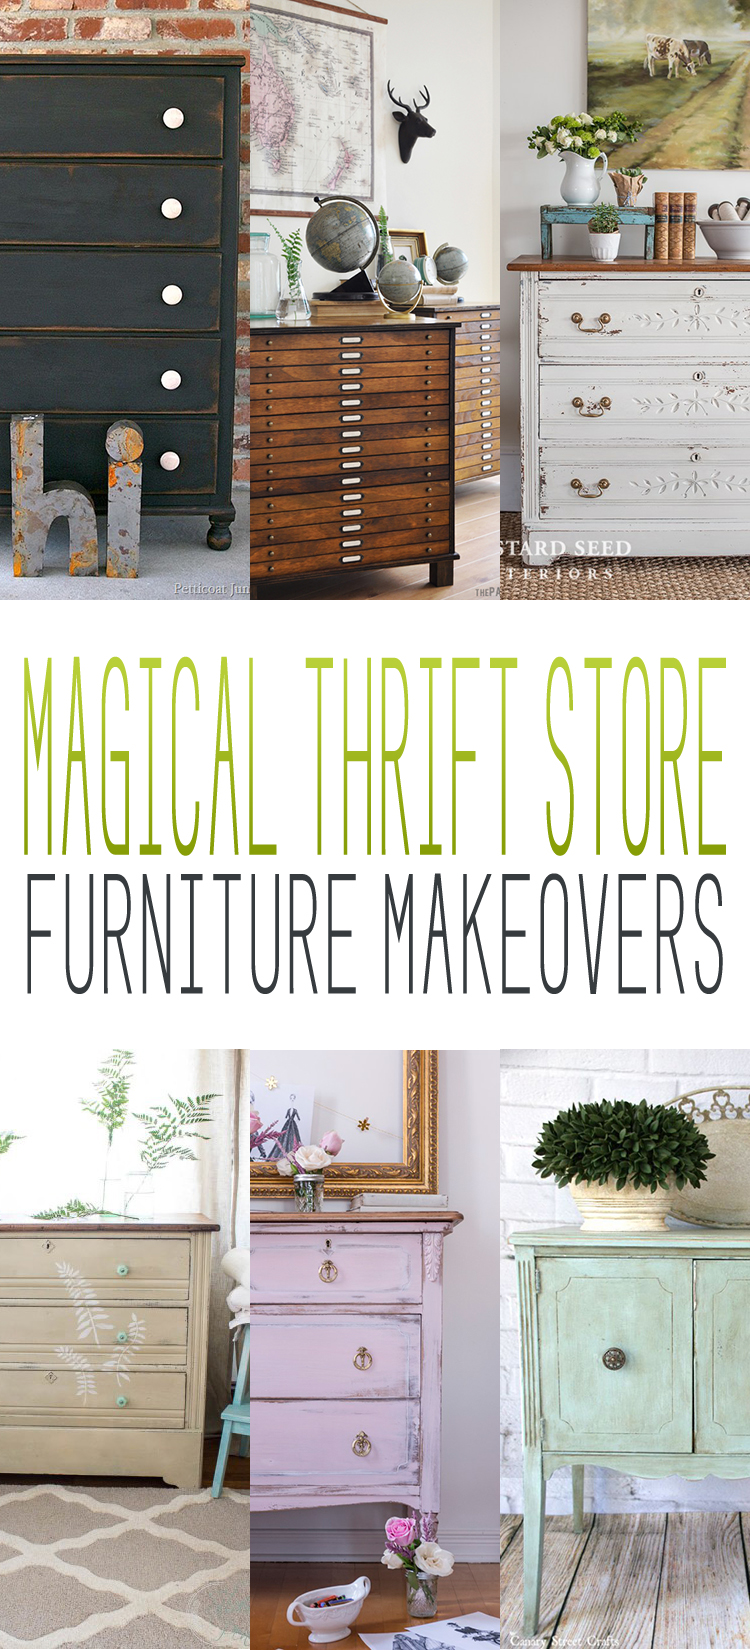 Magical Thrift Store Furniture Makeovers The Cottage Market